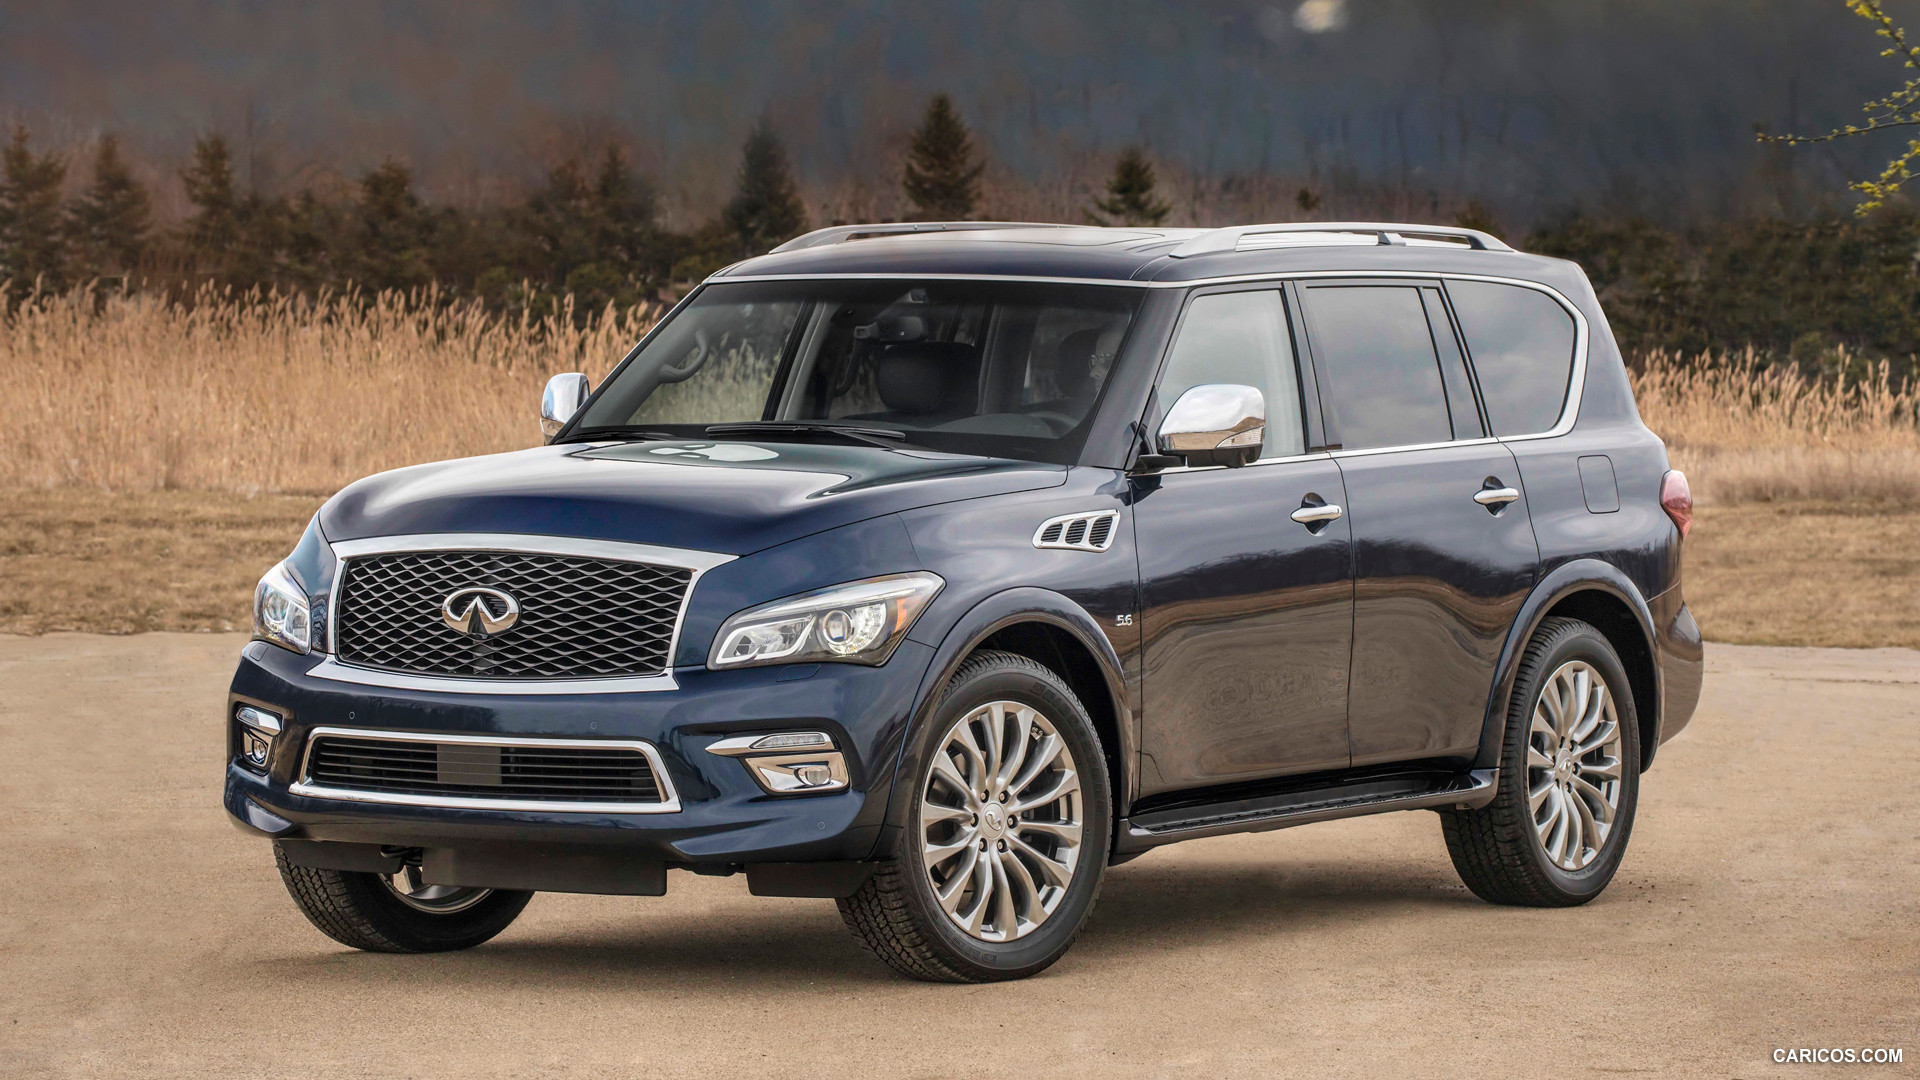 1920x1080 - Infiniti QX80 Wallpapers 4